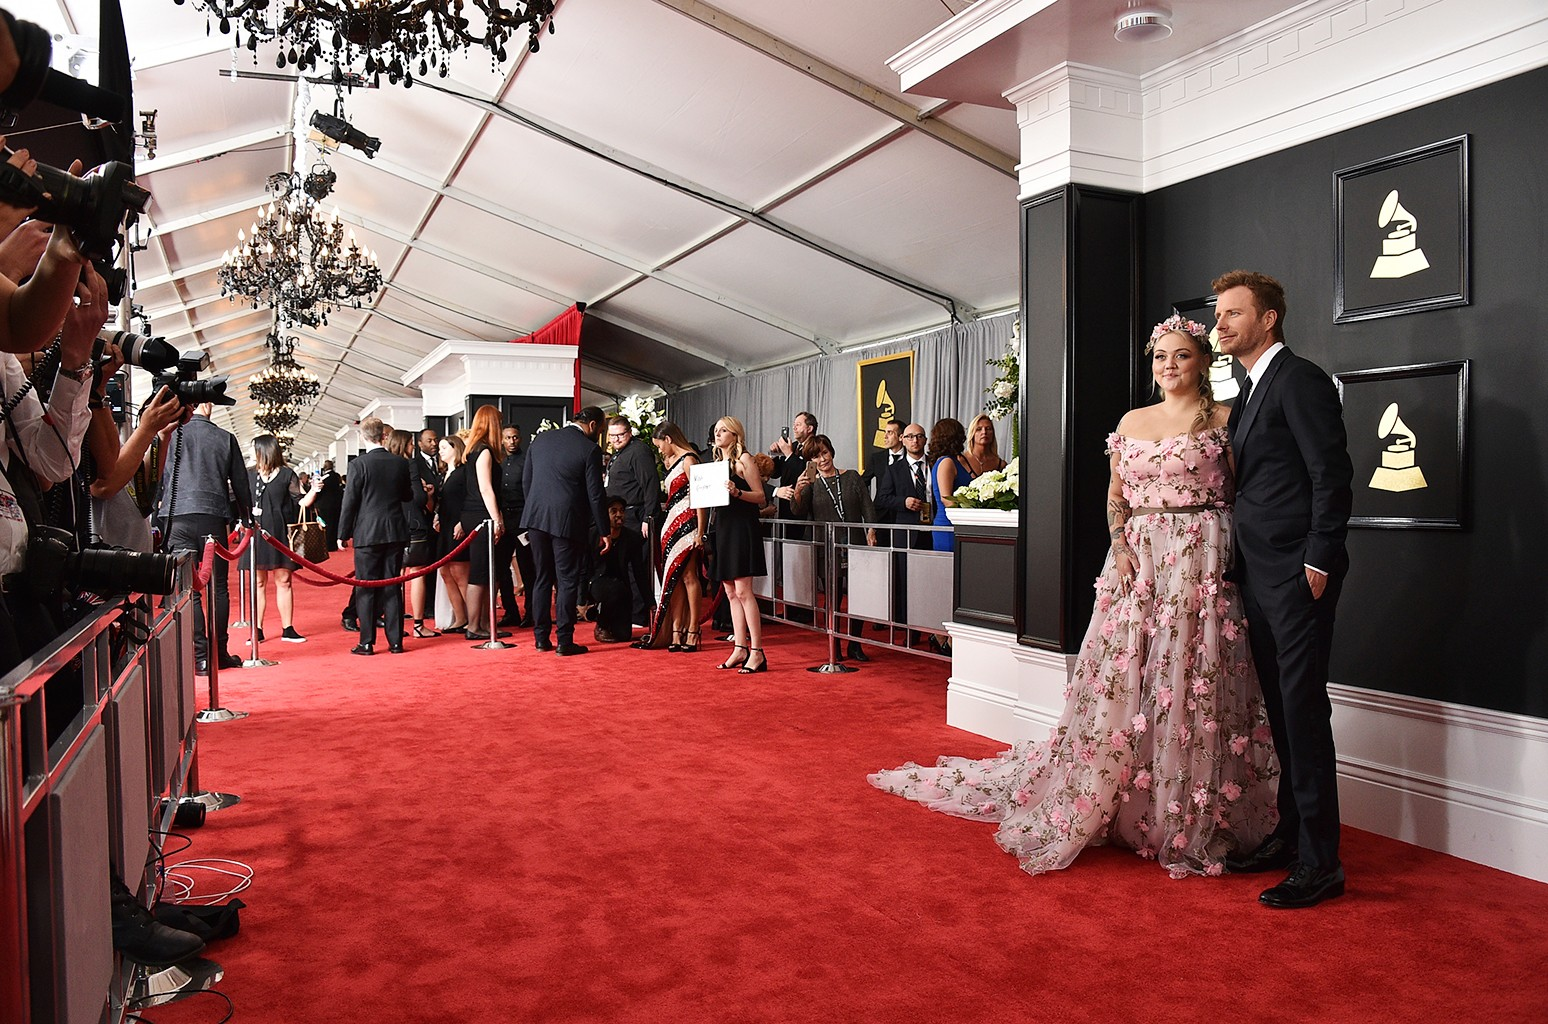 The 59th Annual Grammy Awards at the Staples Center on Feb. 12, 2017 in Los Angeles.